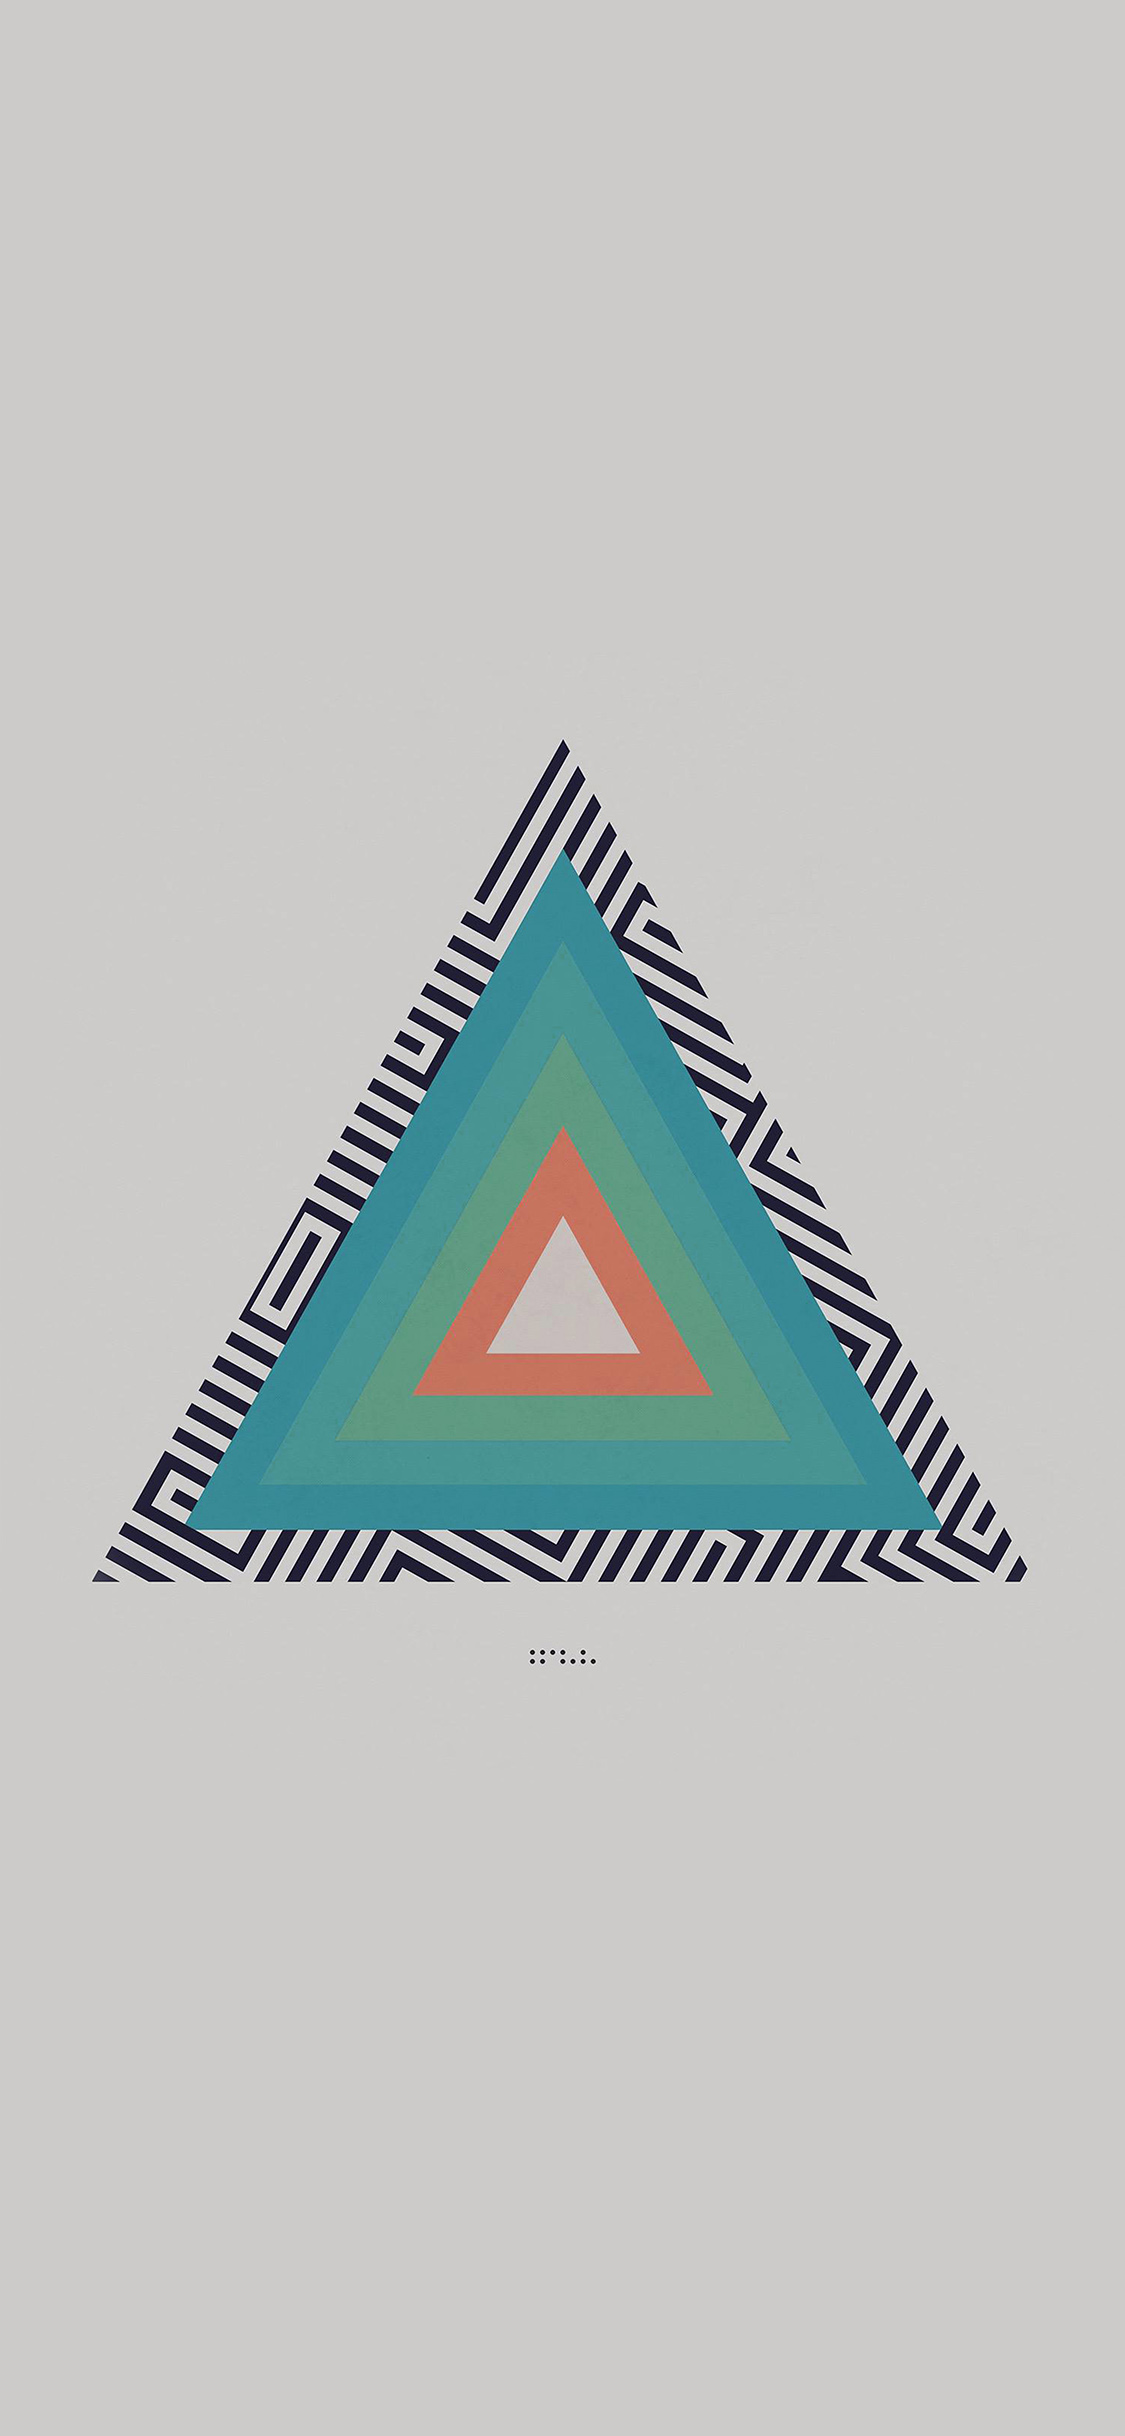 iPhoneXpapers.com-Apple-iPhone-wallpaper-at20-tycho-triangle-abstract-art-illustration-white